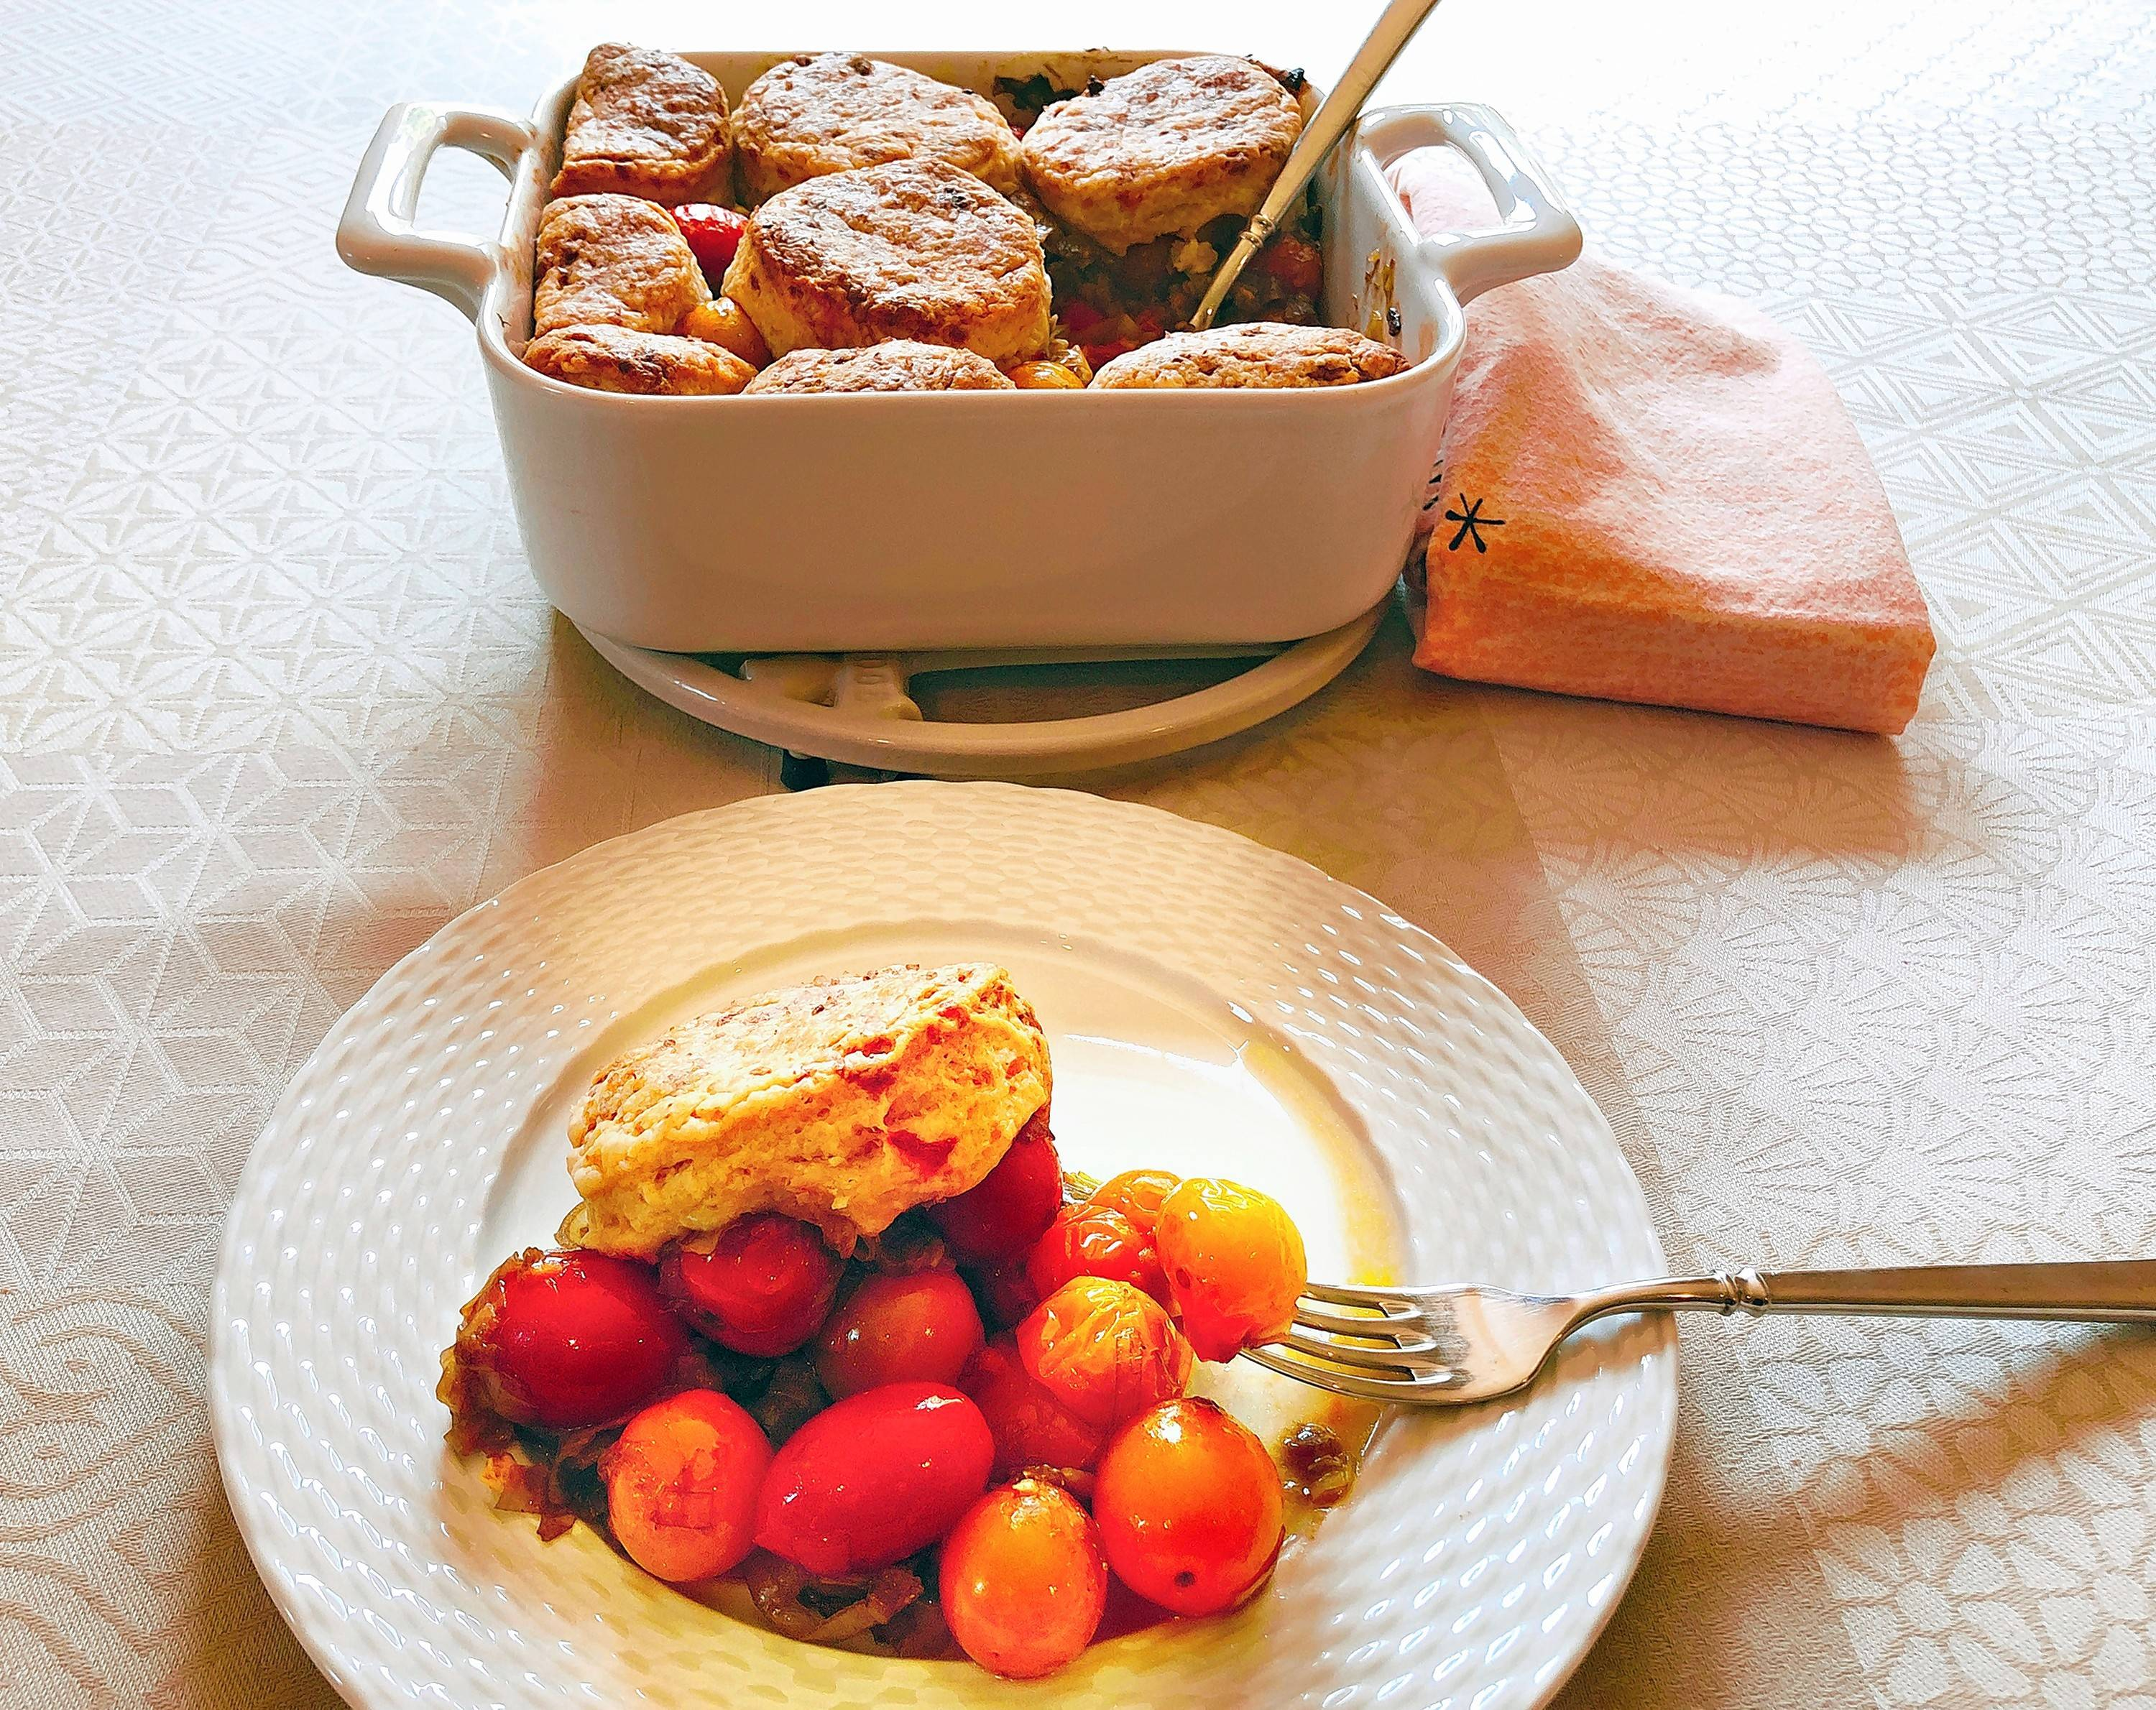 Cherry tomato cobbler with pimento cheese biscuits is a savory spin on a summery dessert. It's a simple showcase for all the cherry tomatoes ripening on the vine, too.